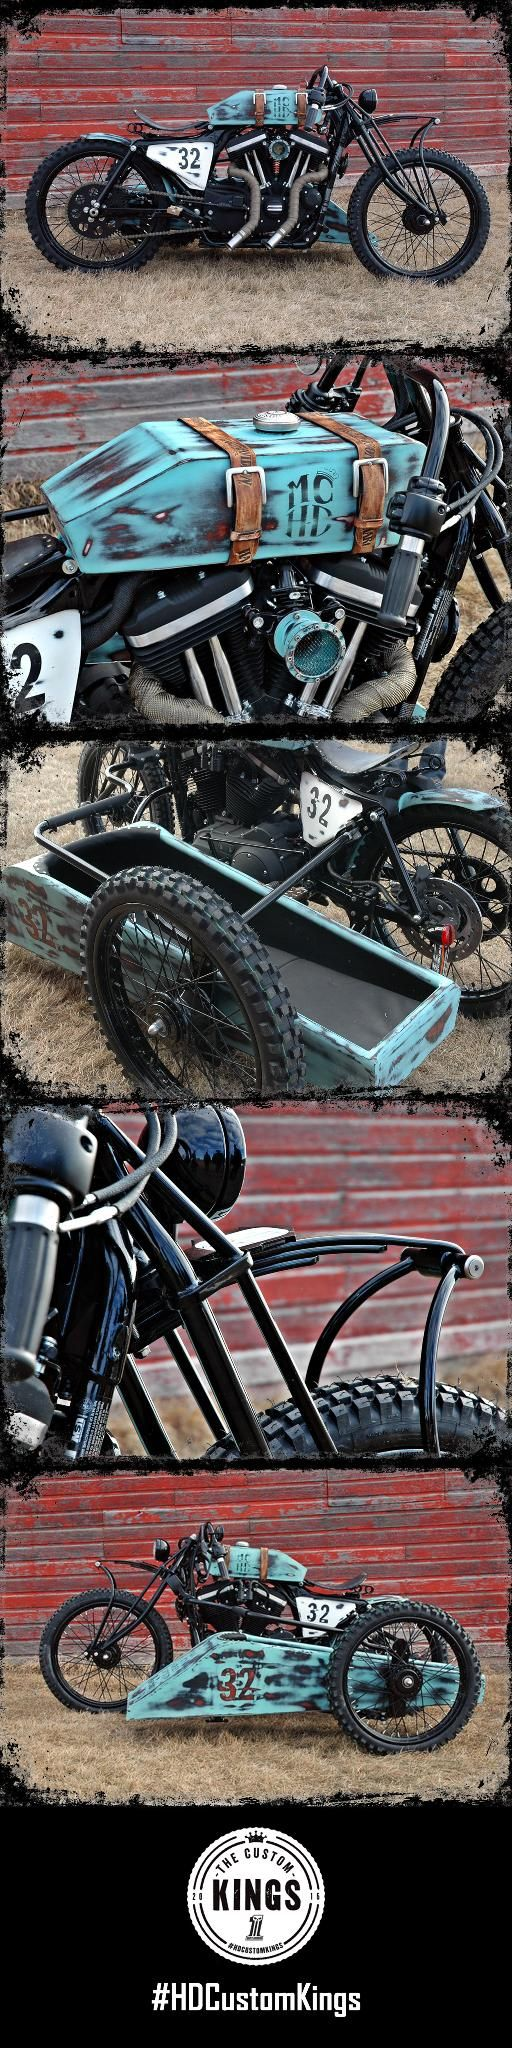 """Magic City Harley-Davidson's build, """"Bonnie & Clyde"""", was inspired by the Harley race bikes of the early 1900's. 